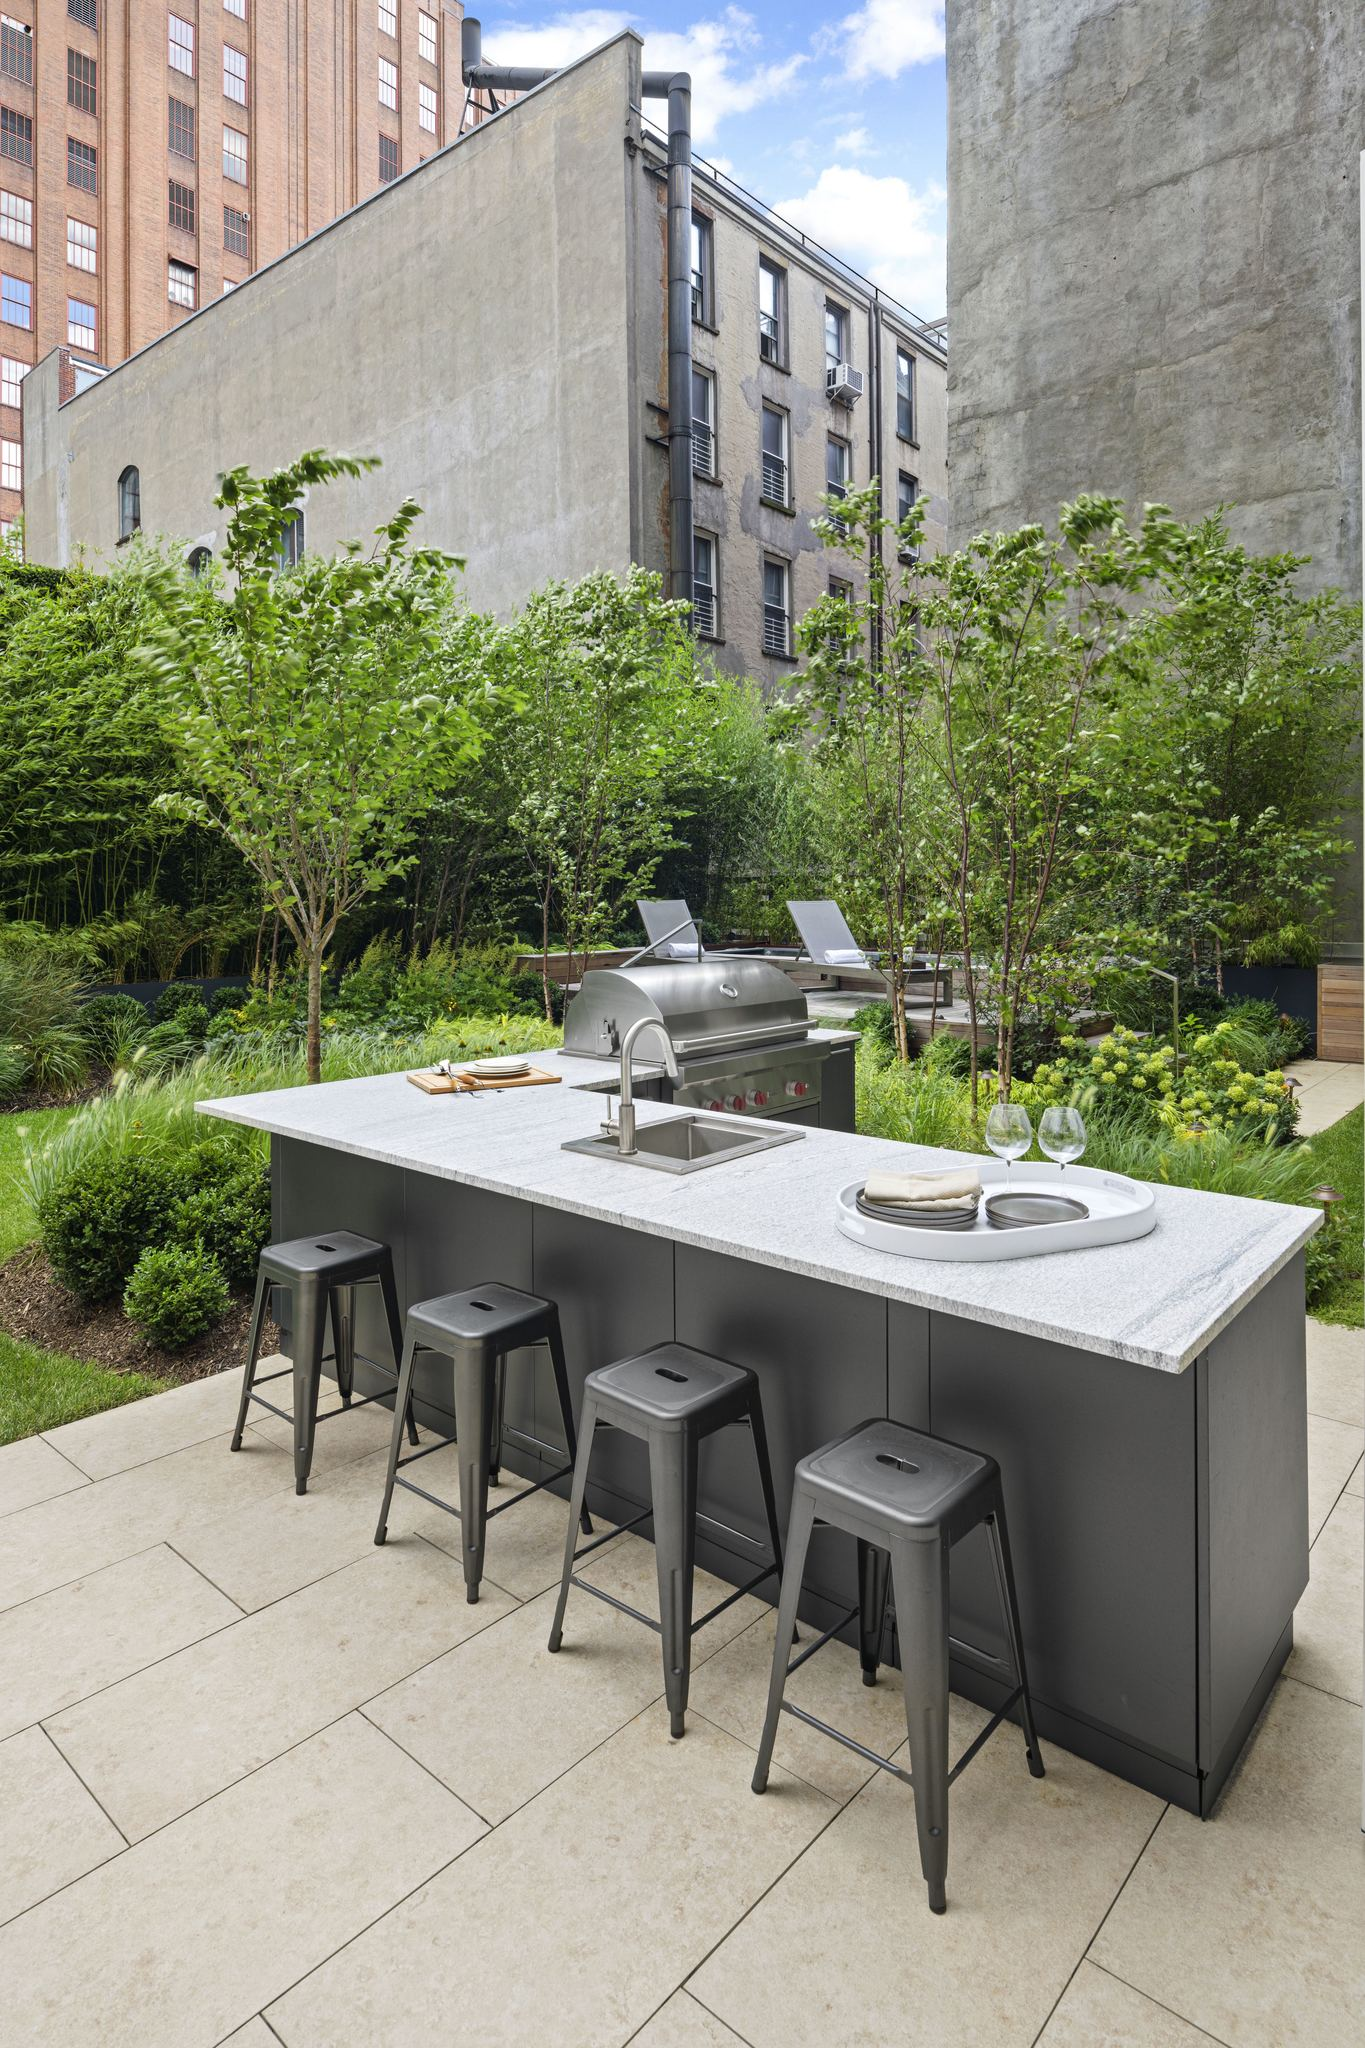 Urban Bonfire Outdoor Kitchen Manhattan, New York